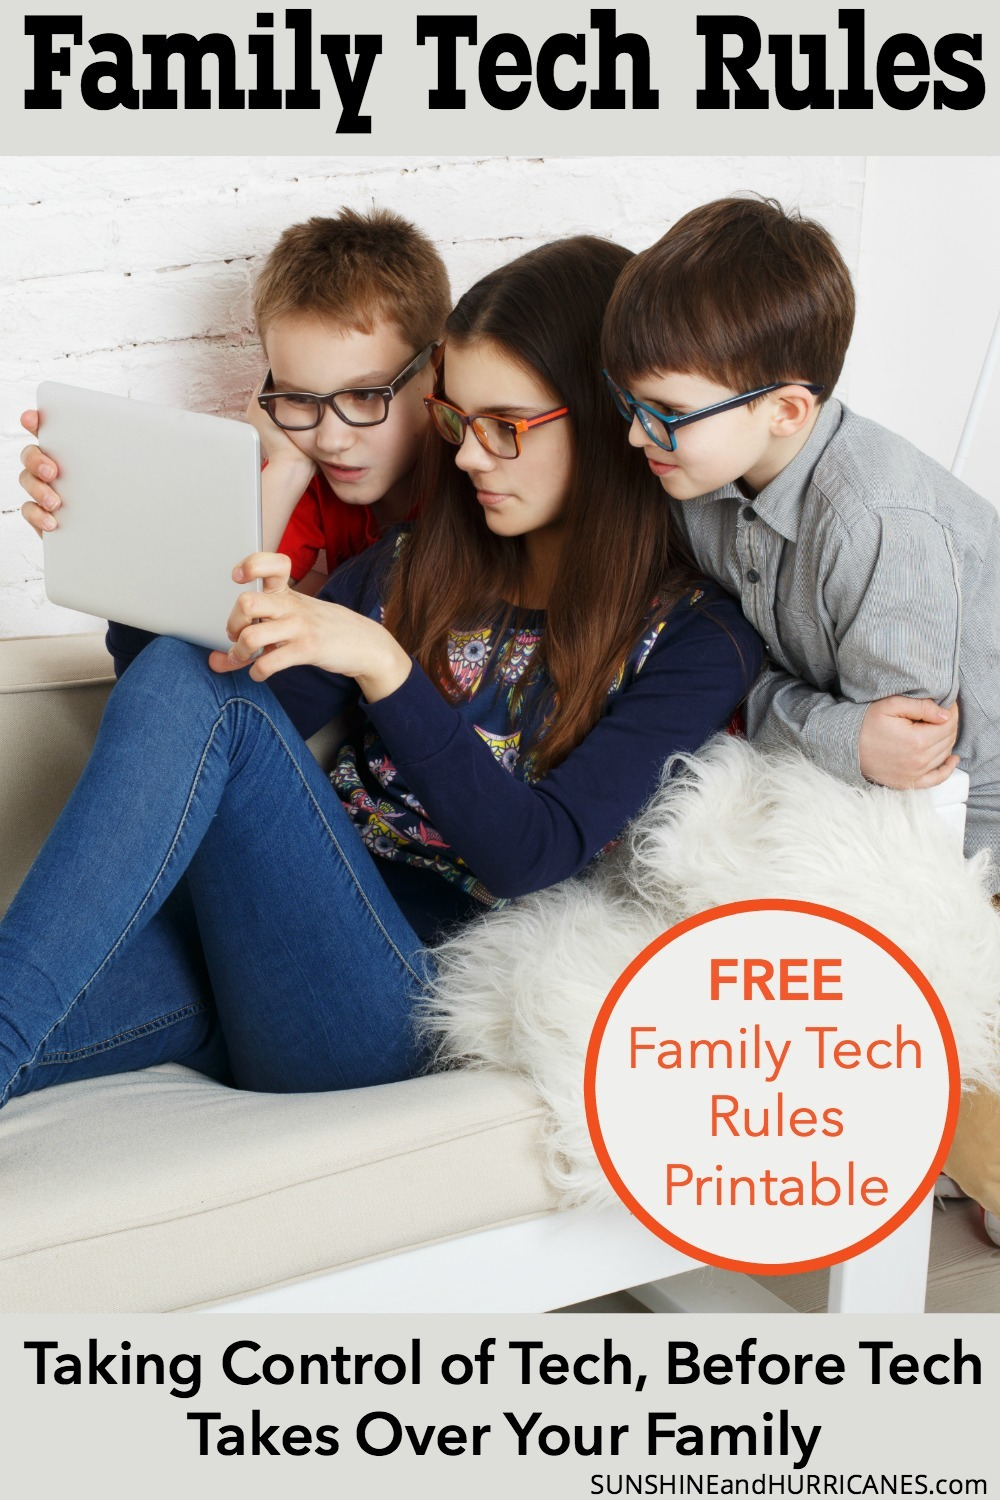 Do you feel like you're losing your family to technology? Then it's about time to set some family technology rules. You can do it and here's how to get started. Free Family Tech Rules Printable Included.